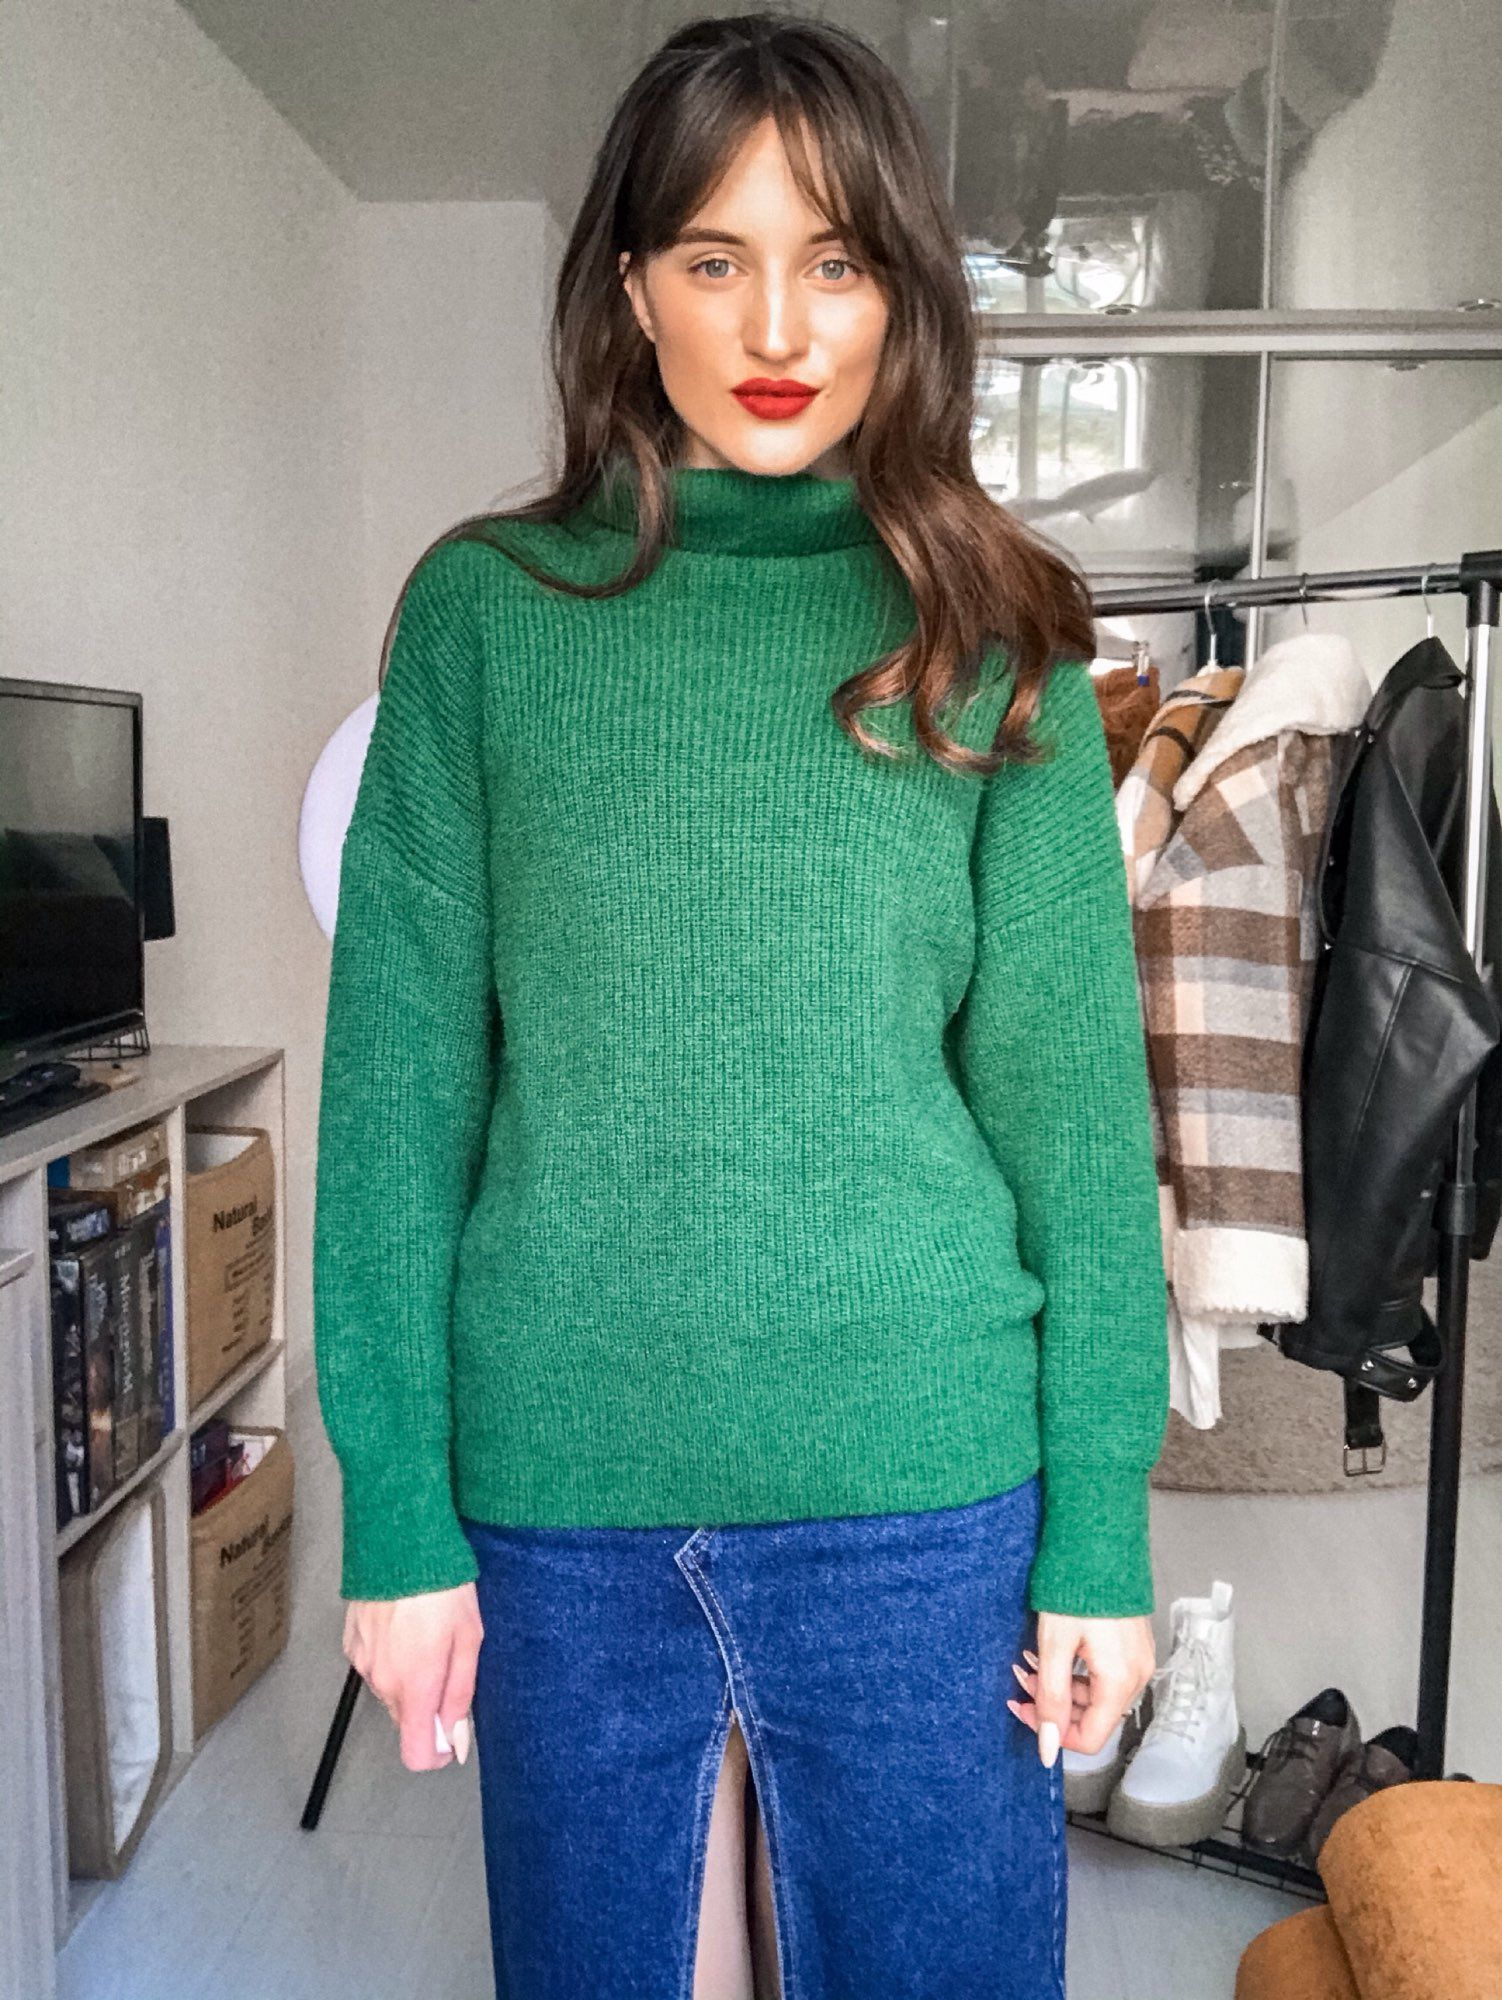 Turtleneck Knitted Sweater Hopikas Green One Size